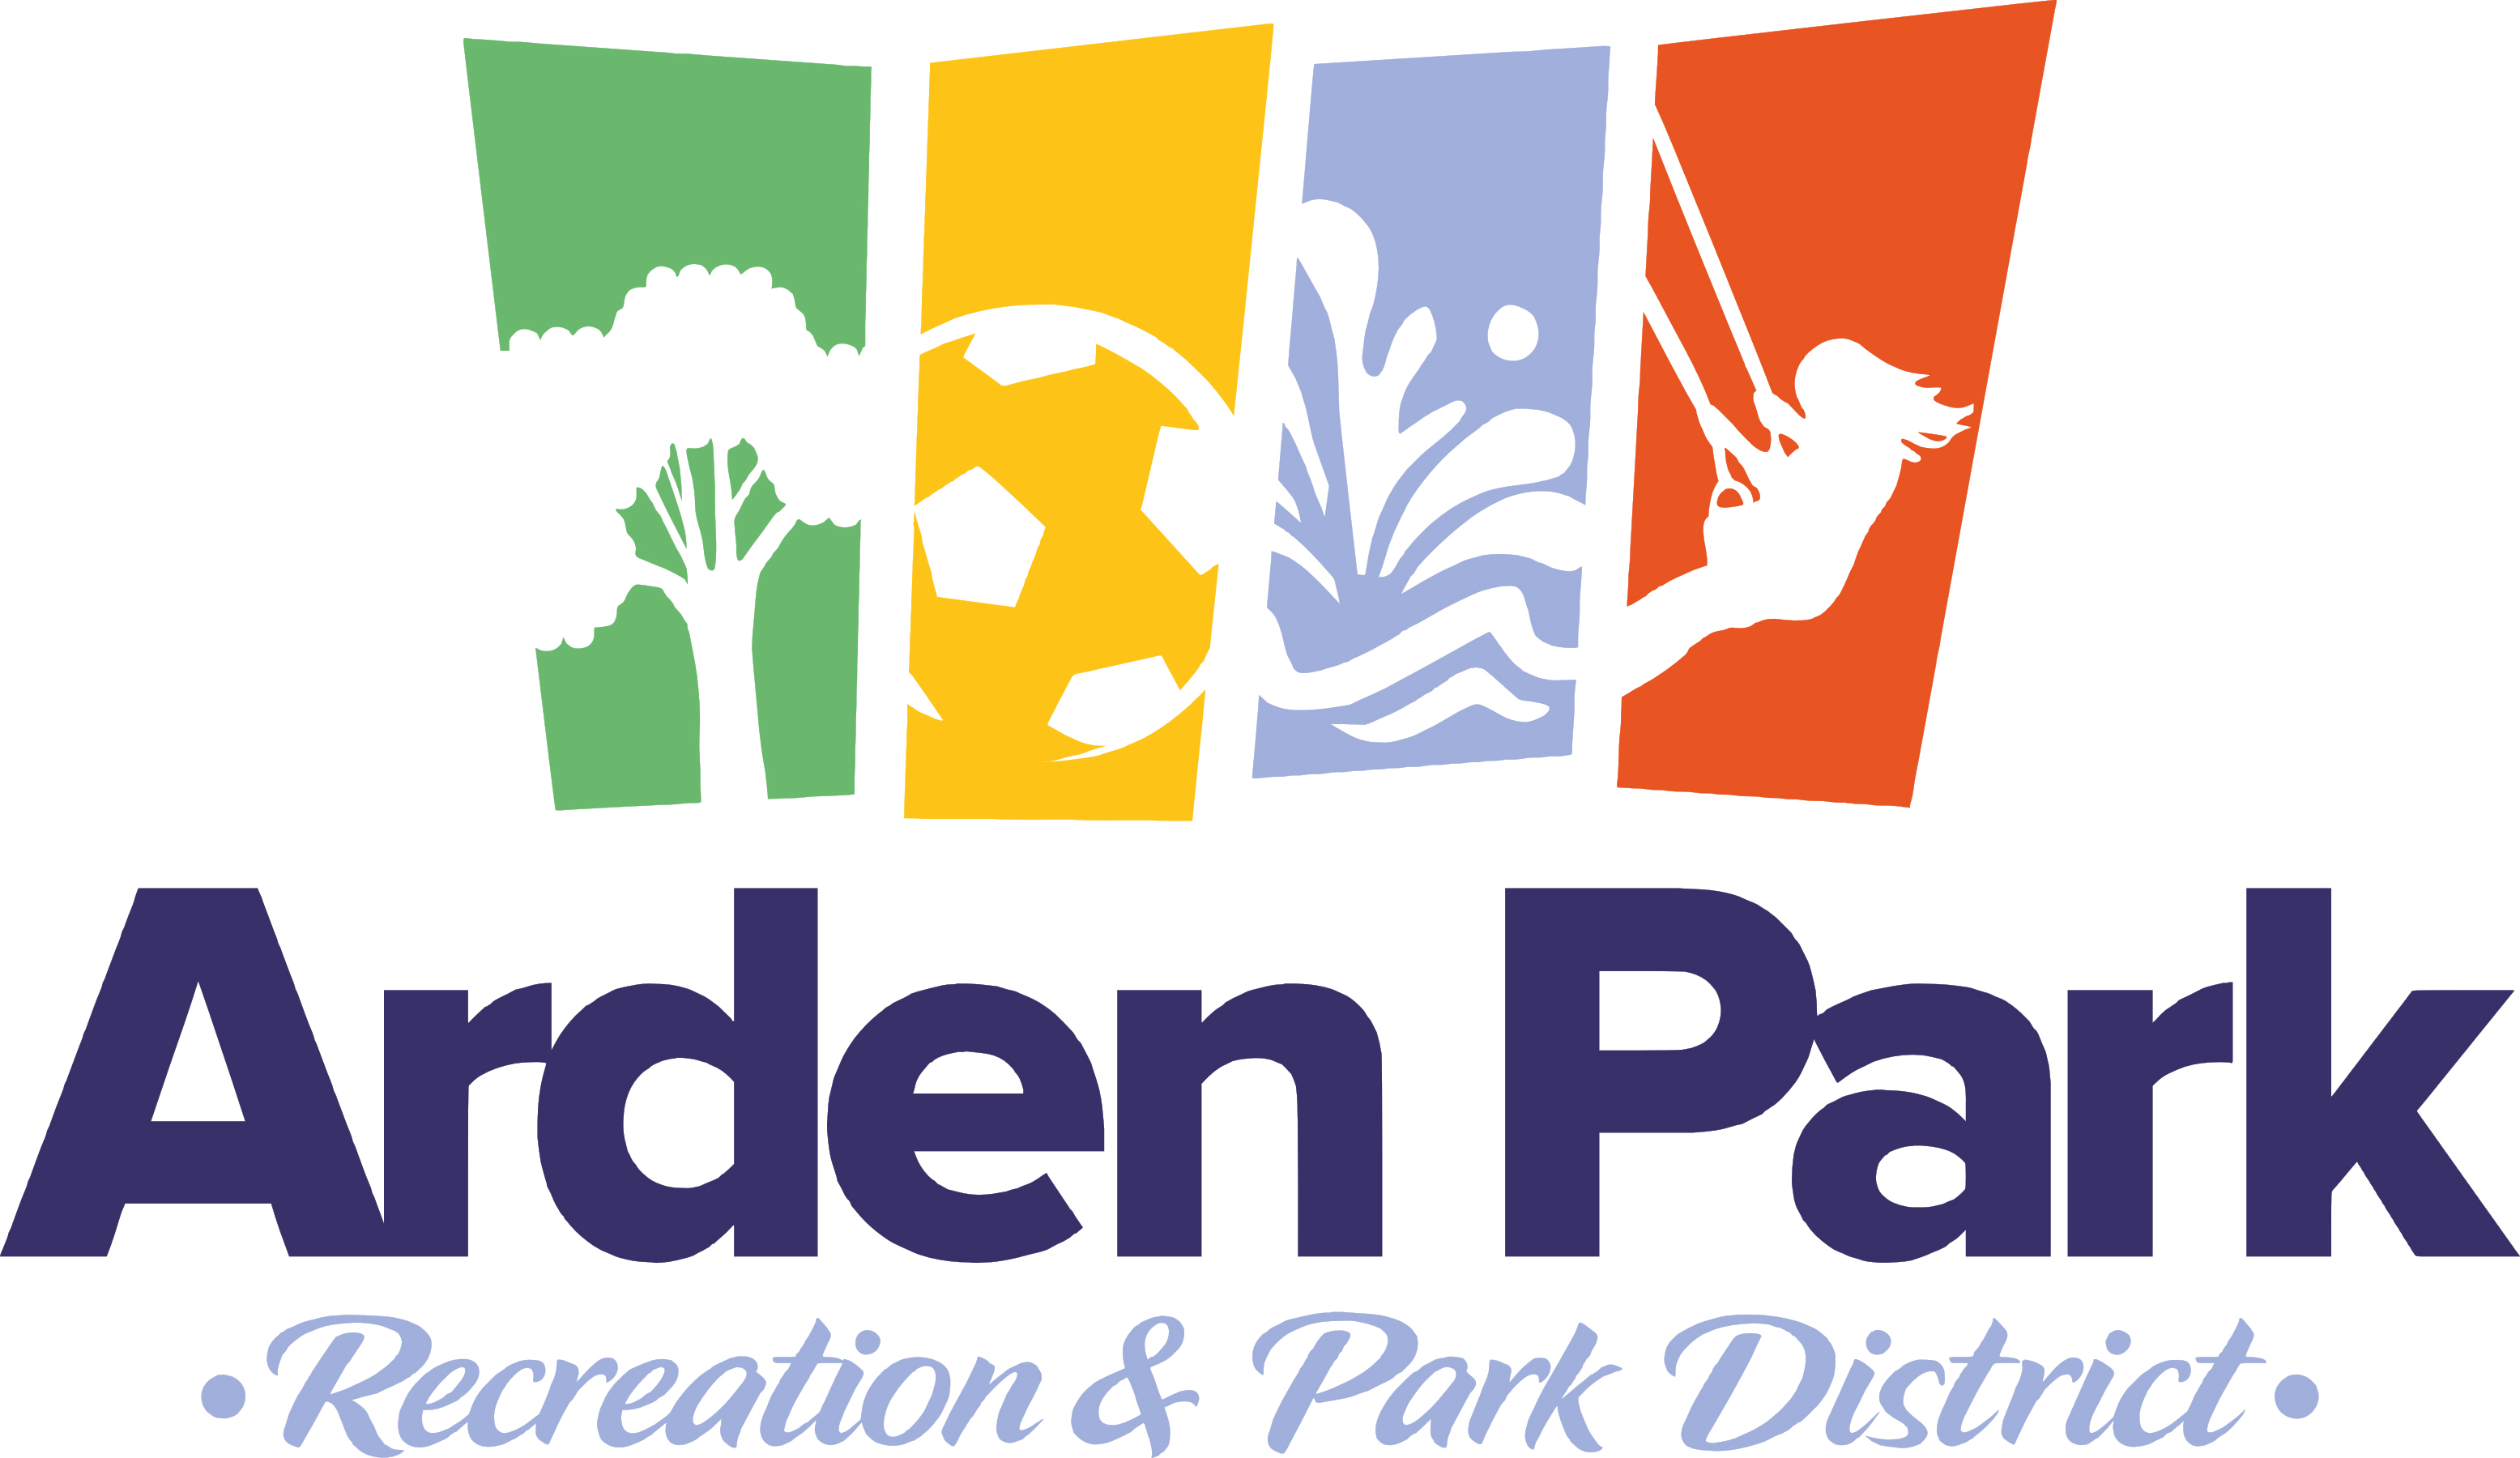 Arden Park Recreation and Park District